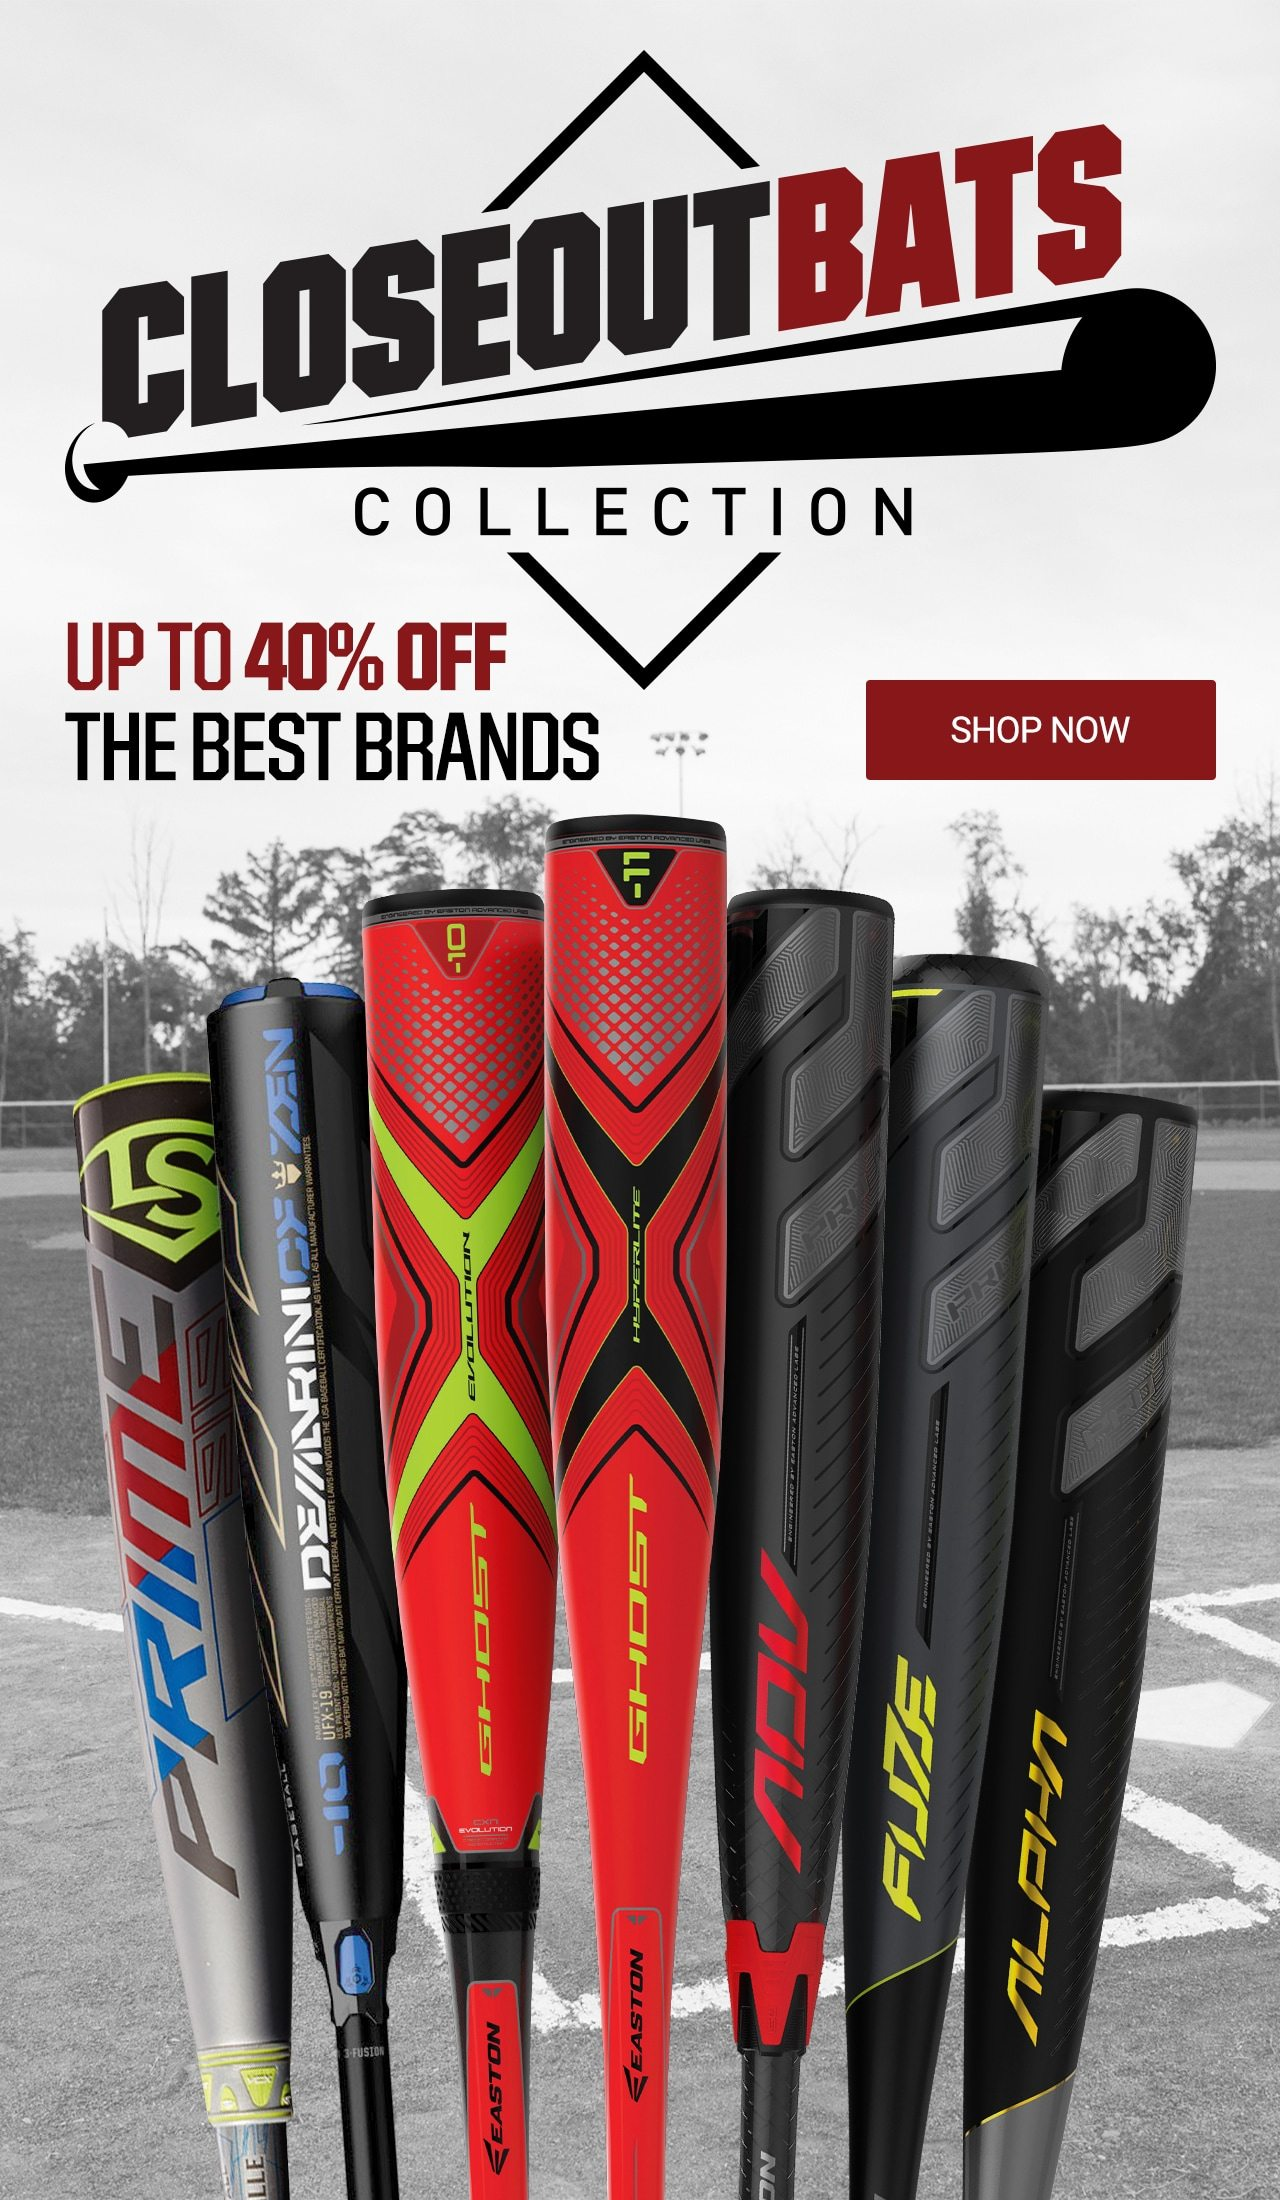 CLOSEOUT BAT COLLECTION UP TO 40% OFF THE BEST BRANDS | SHOP NOW